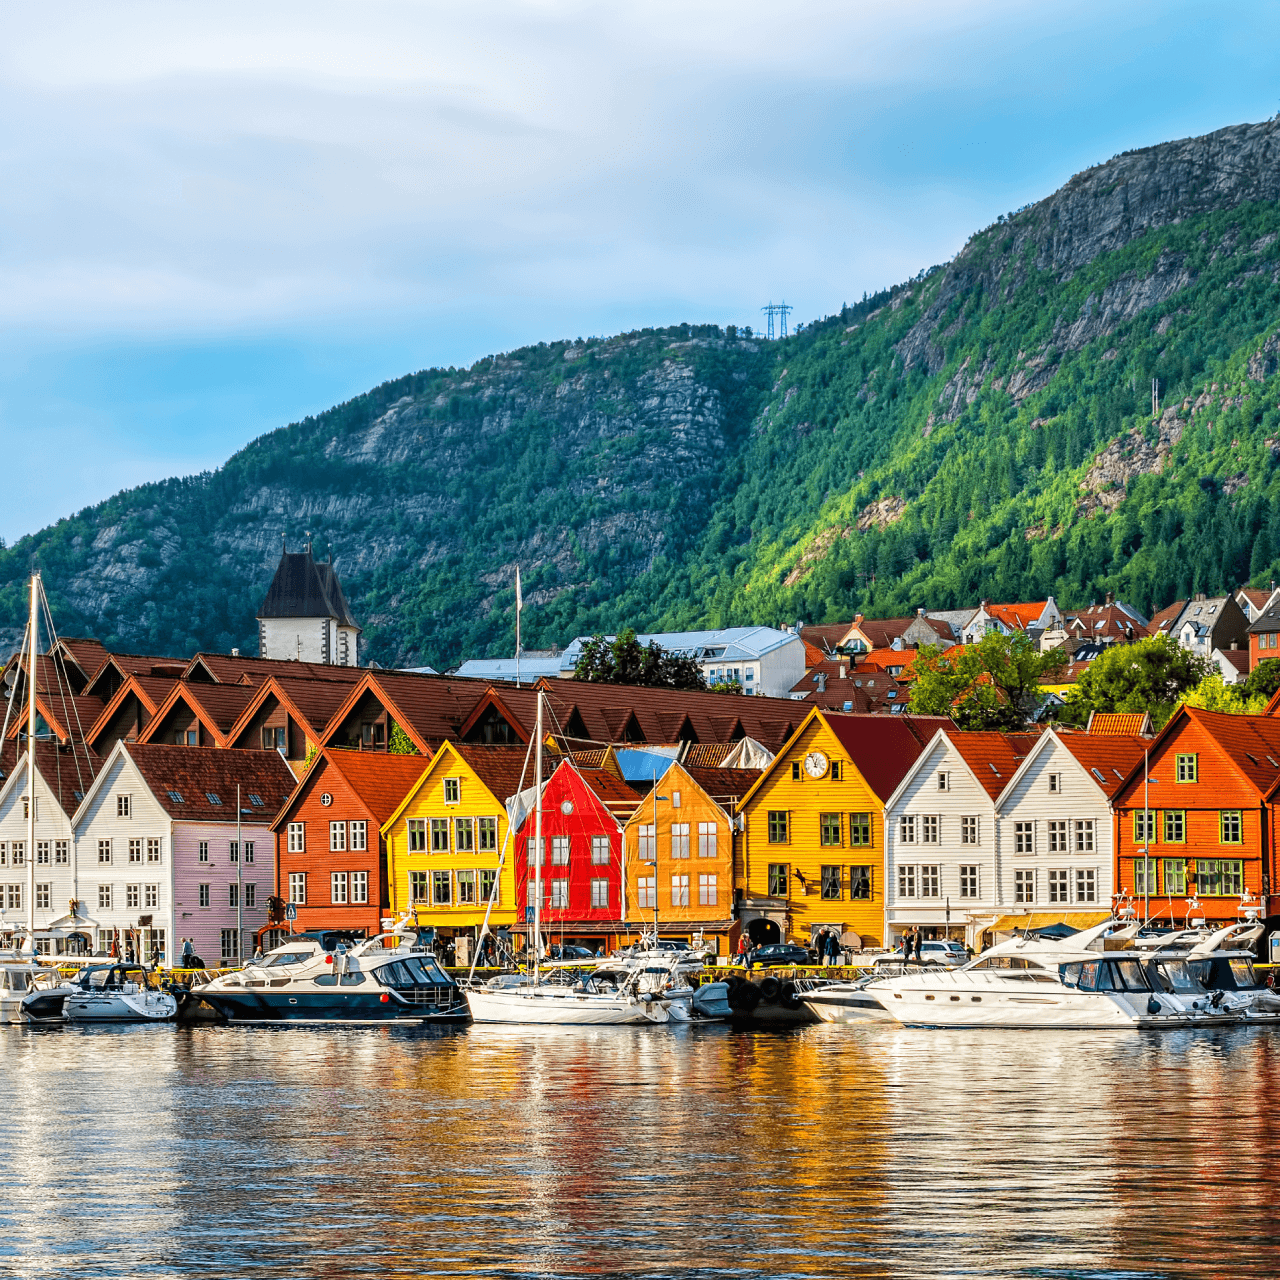 Why Are Electric Cars So Popular in Norway?